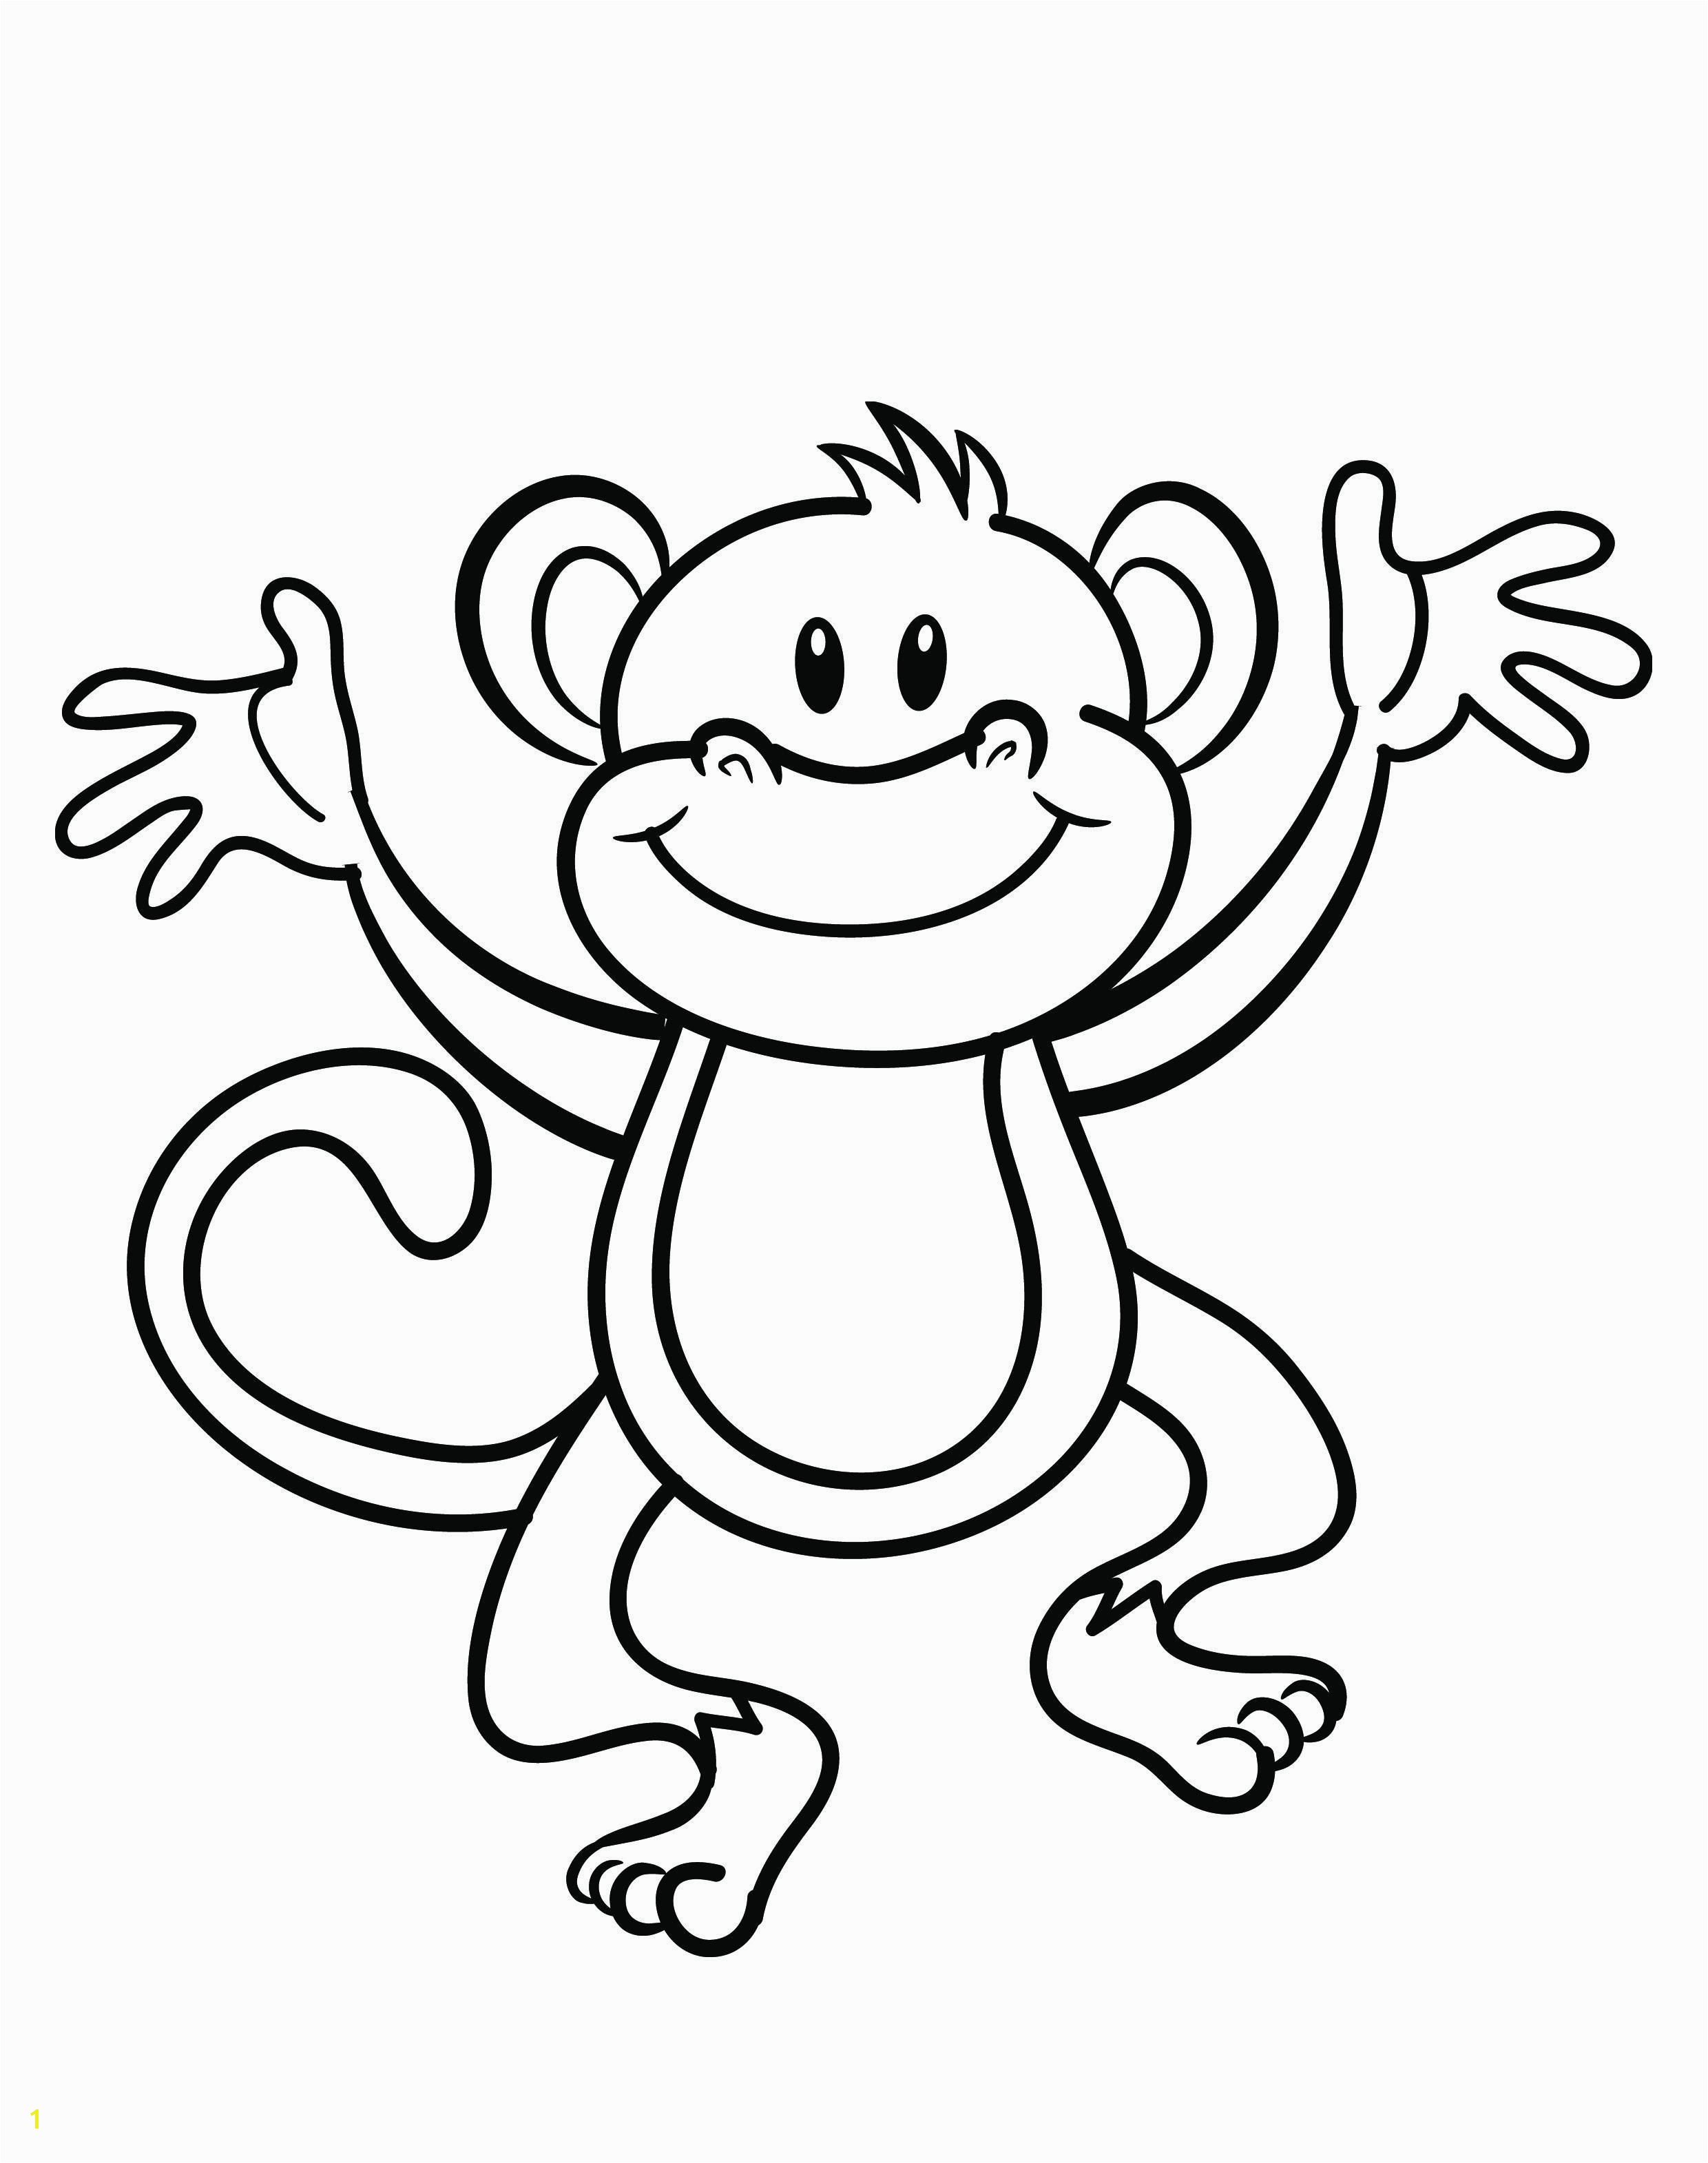 Free printable monkey coloring page